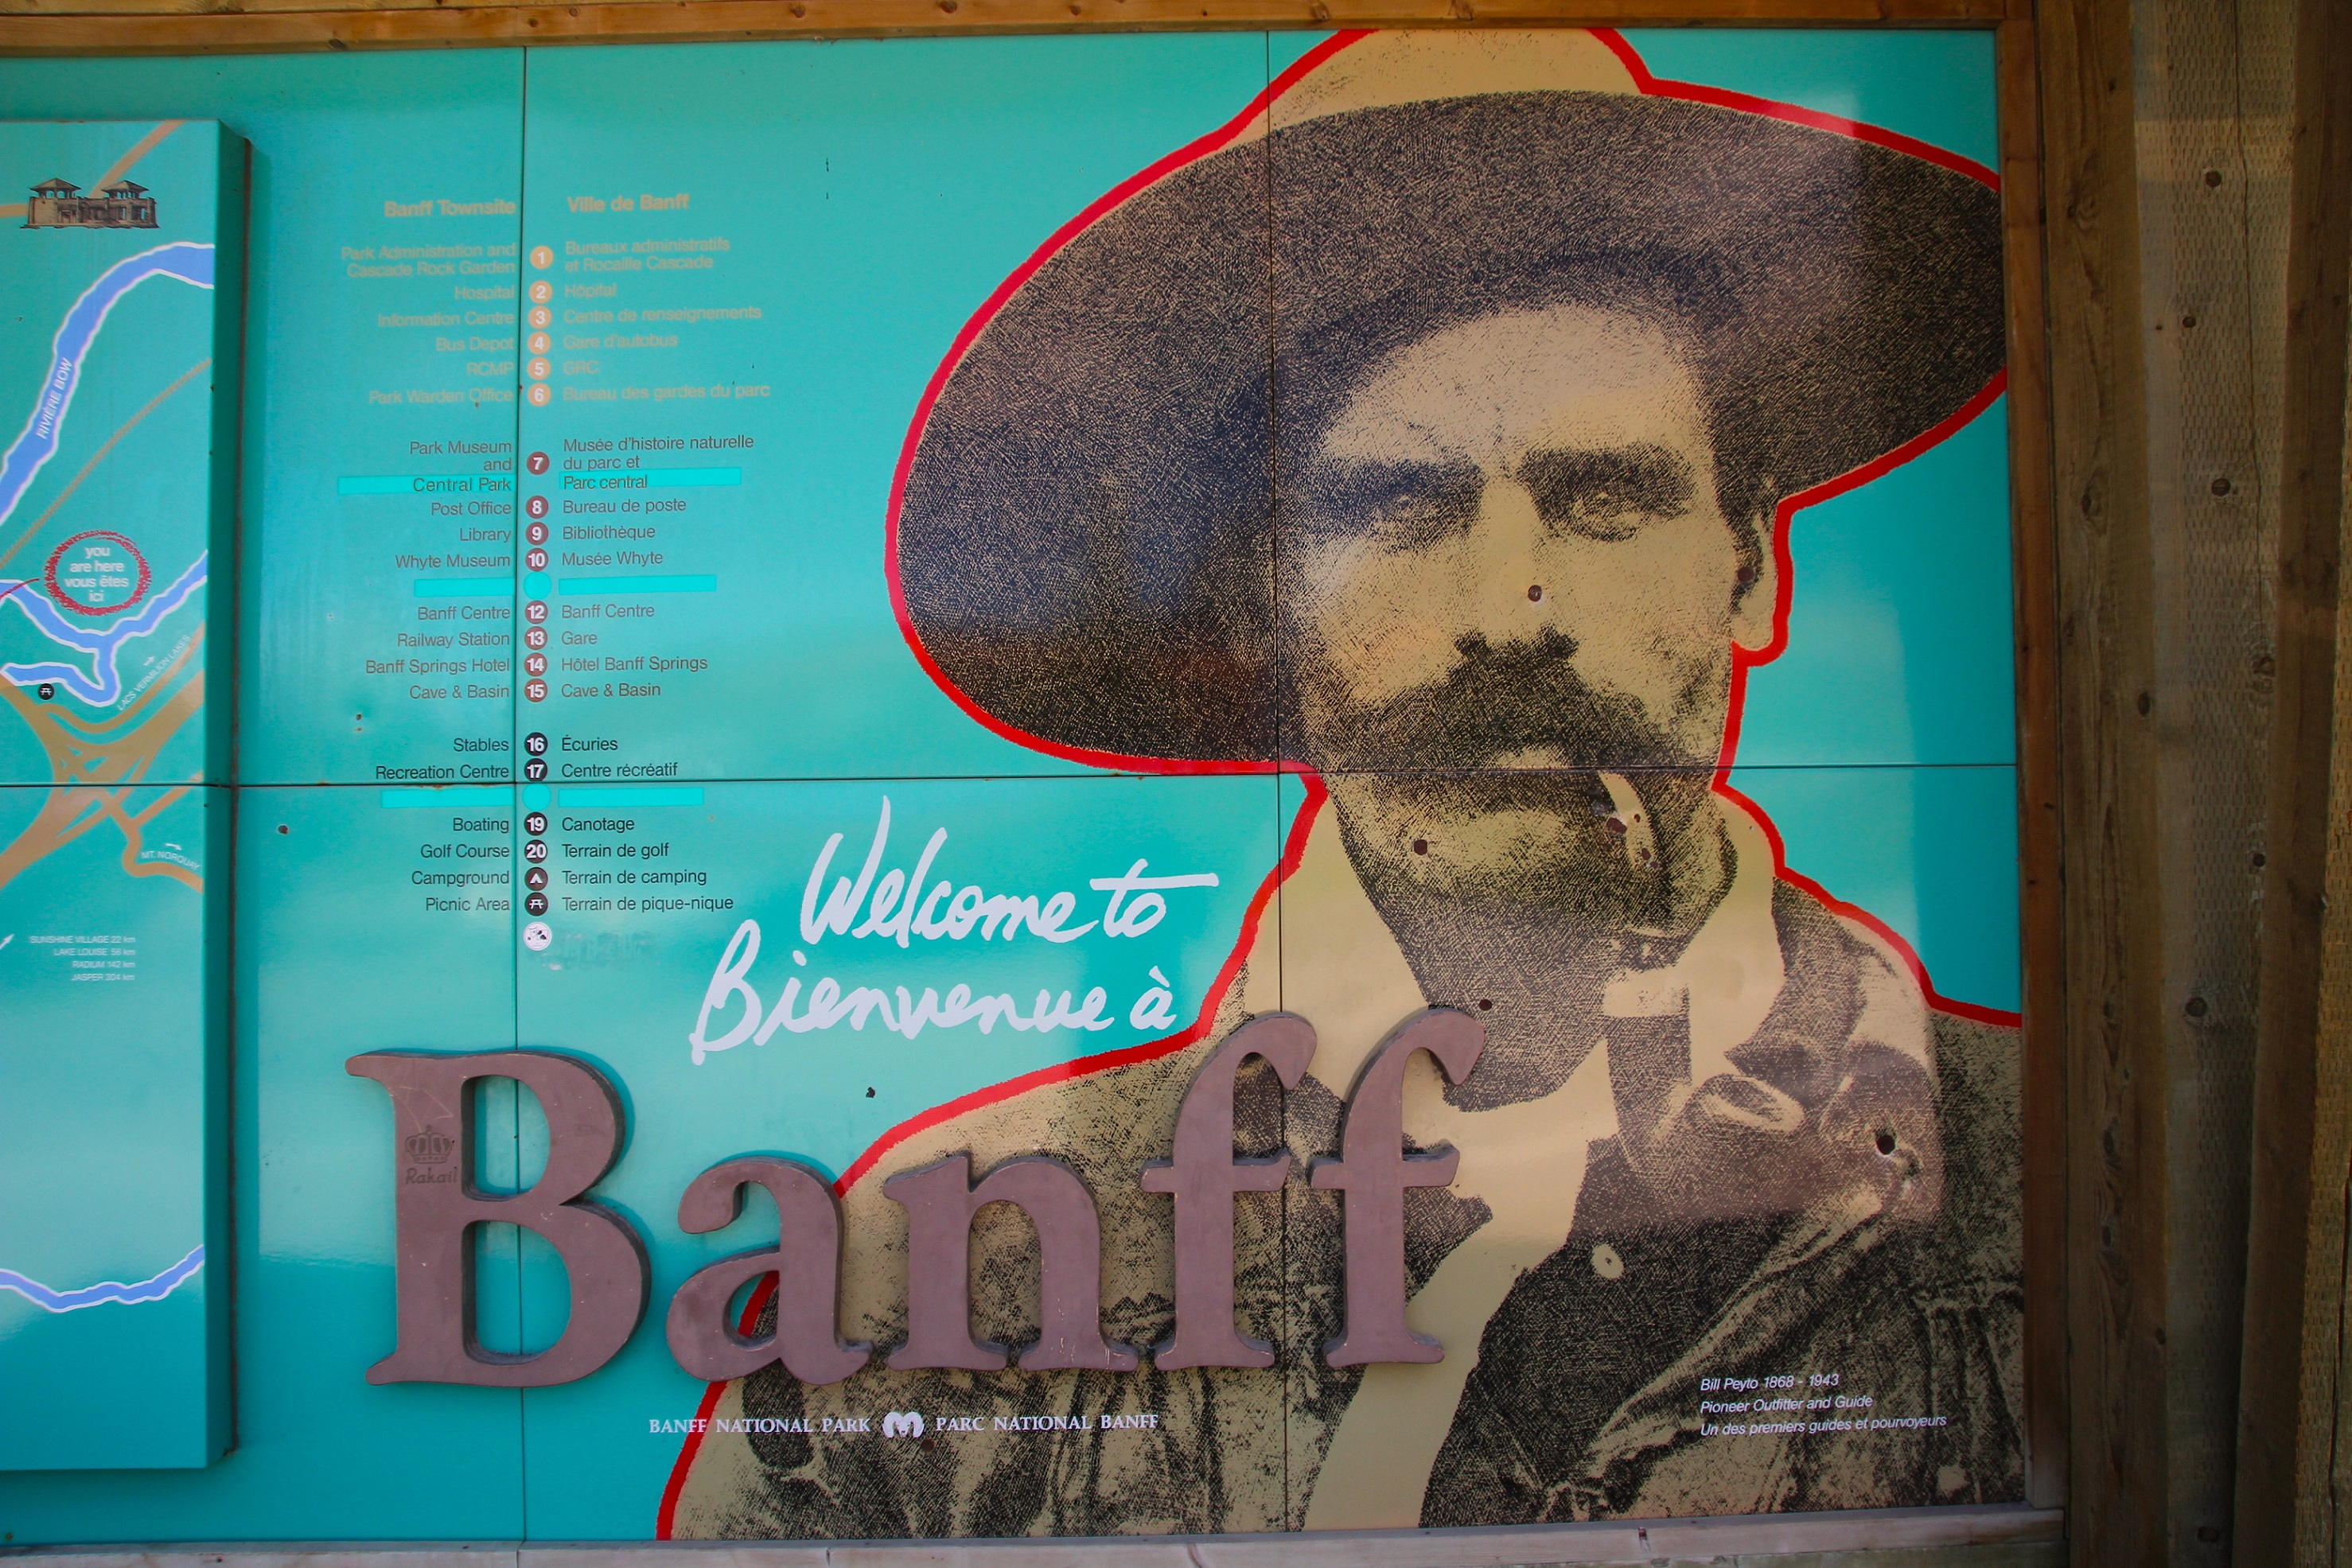 001 - Welcome To Banff Sign